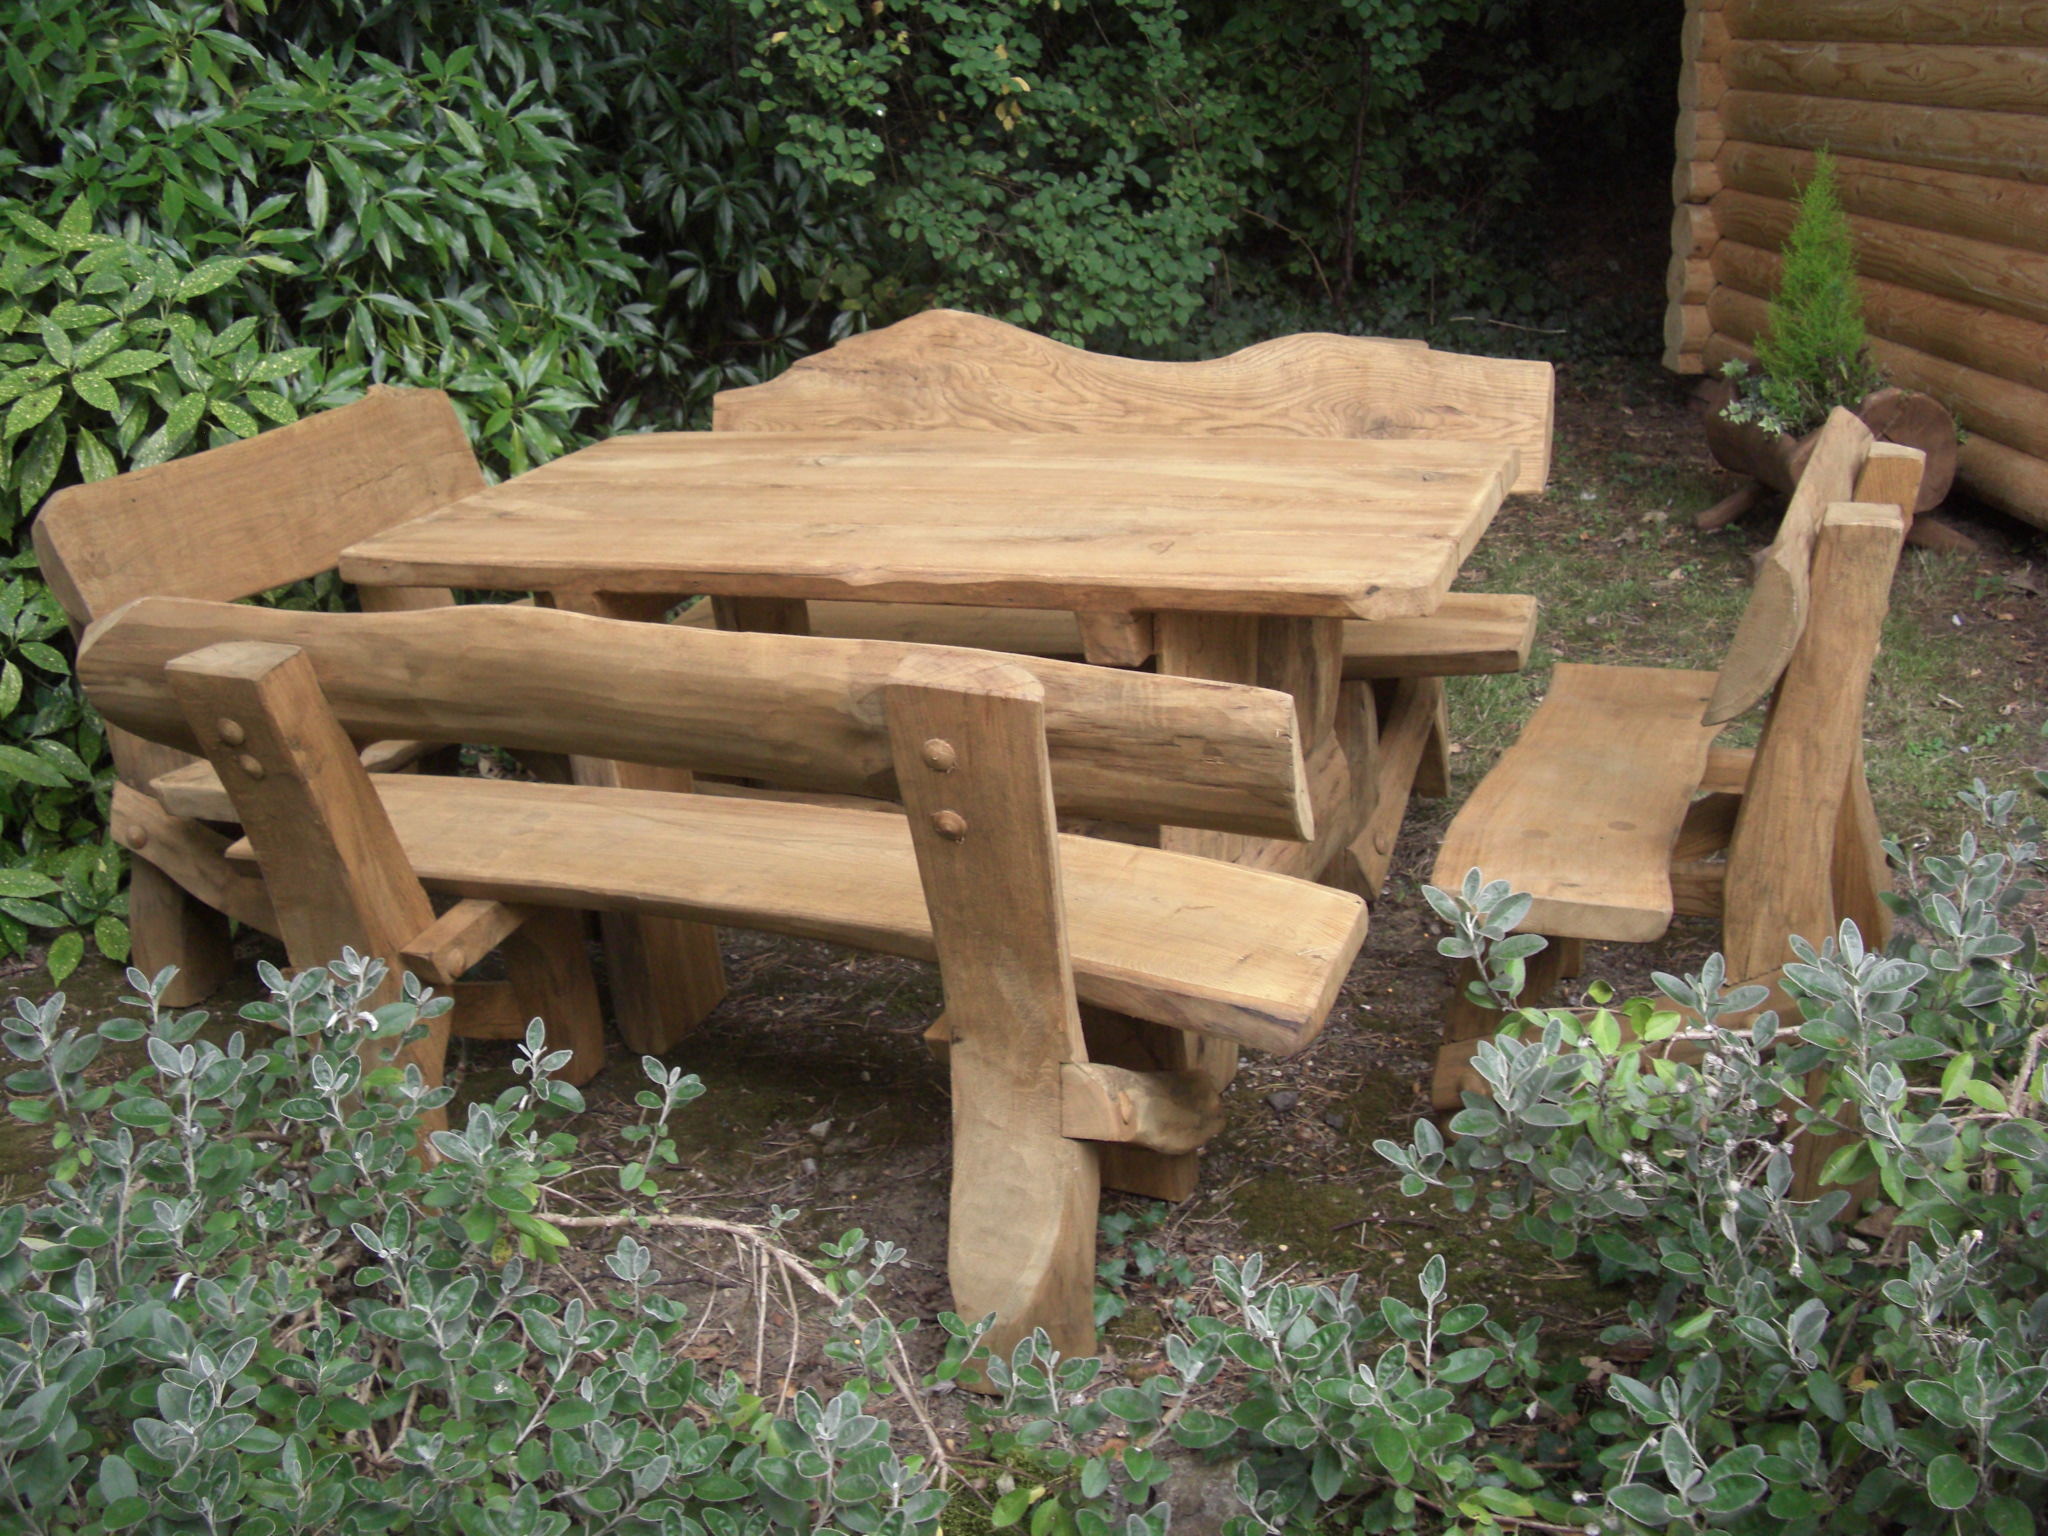 Bench and Table Set 2 * The Rustic Summer House